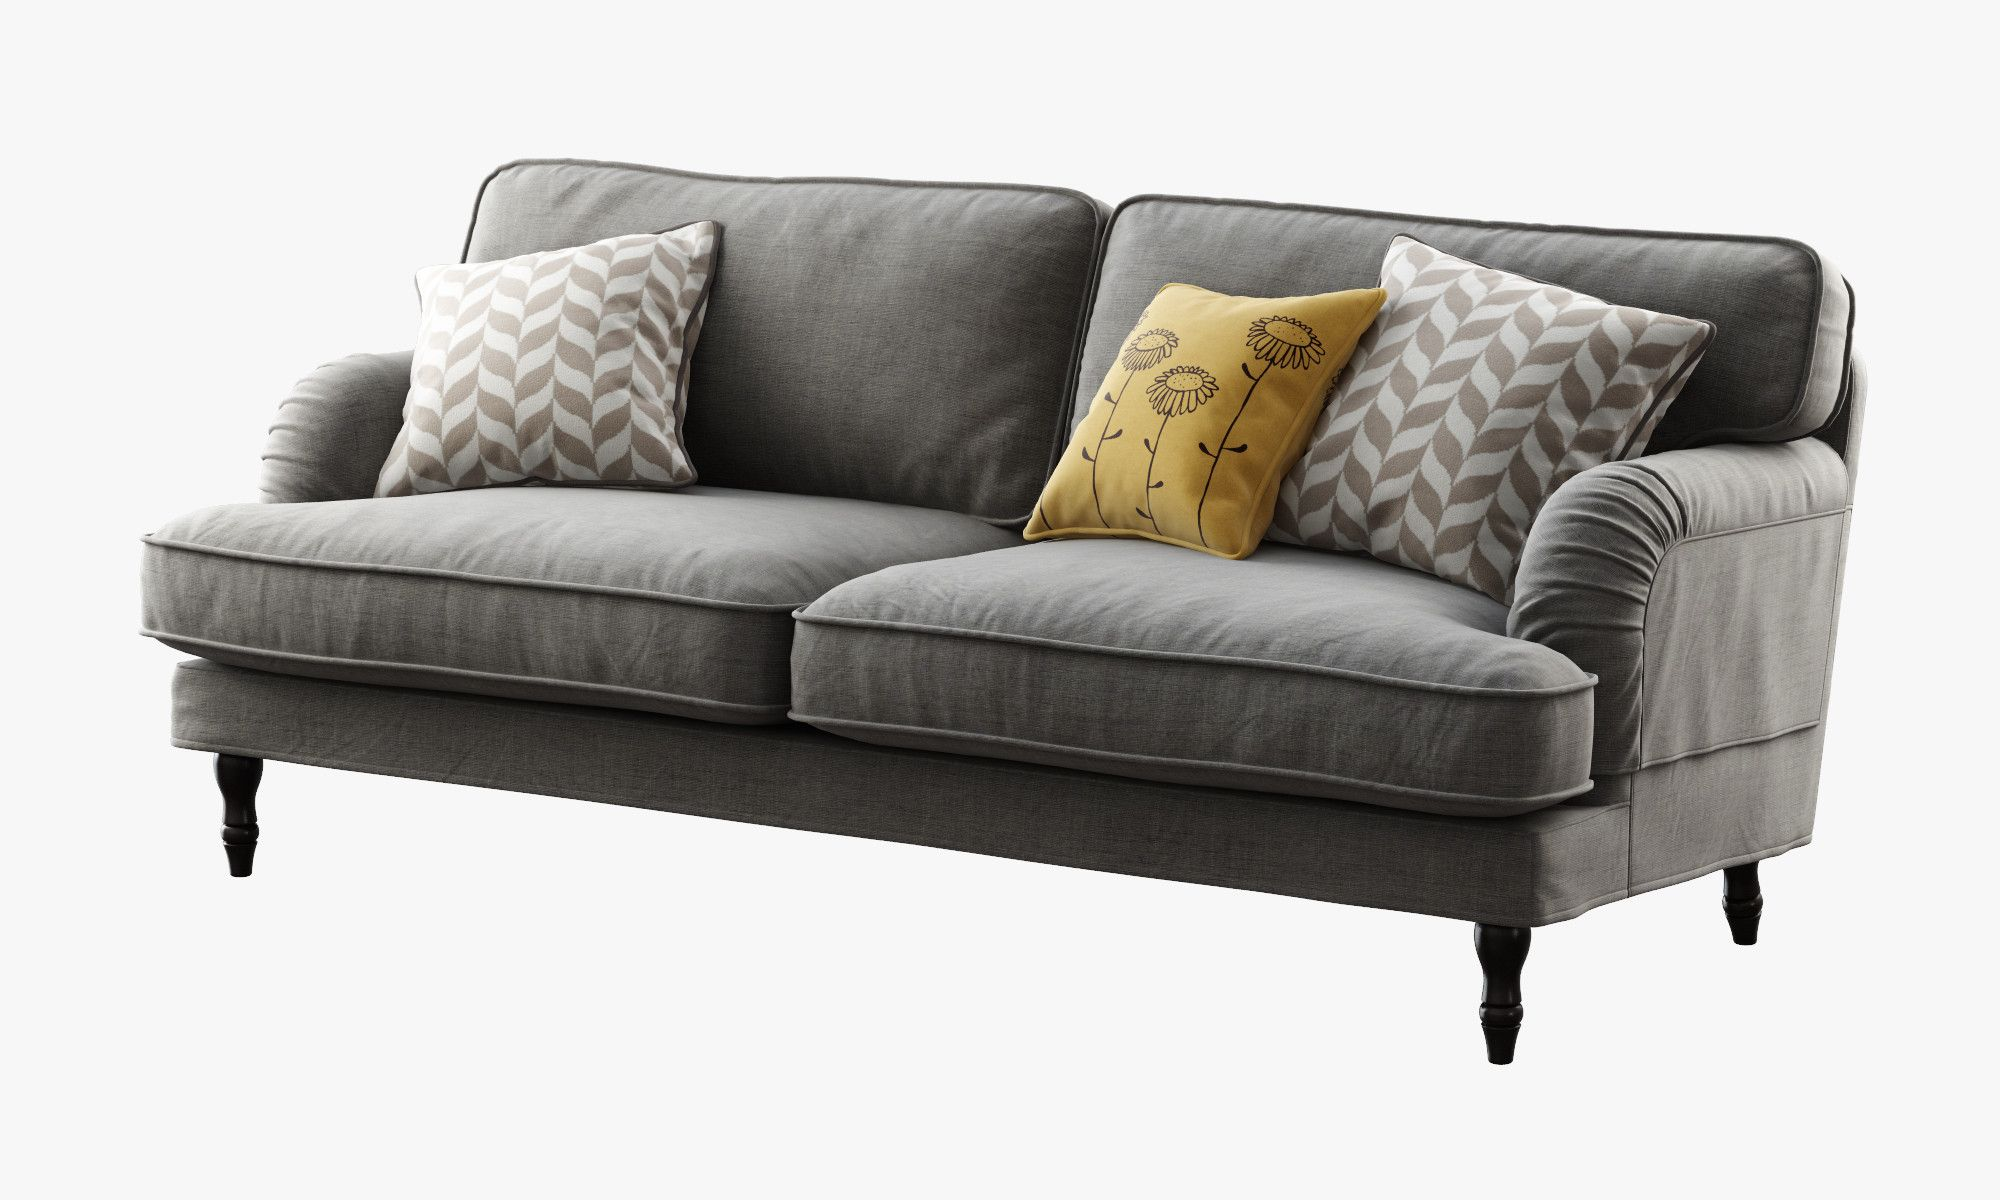 Beau Cool Best Ikea Sofa , Unique Best Ikea Sofa 85 In Contemporary Sofa  Inspiration With Best